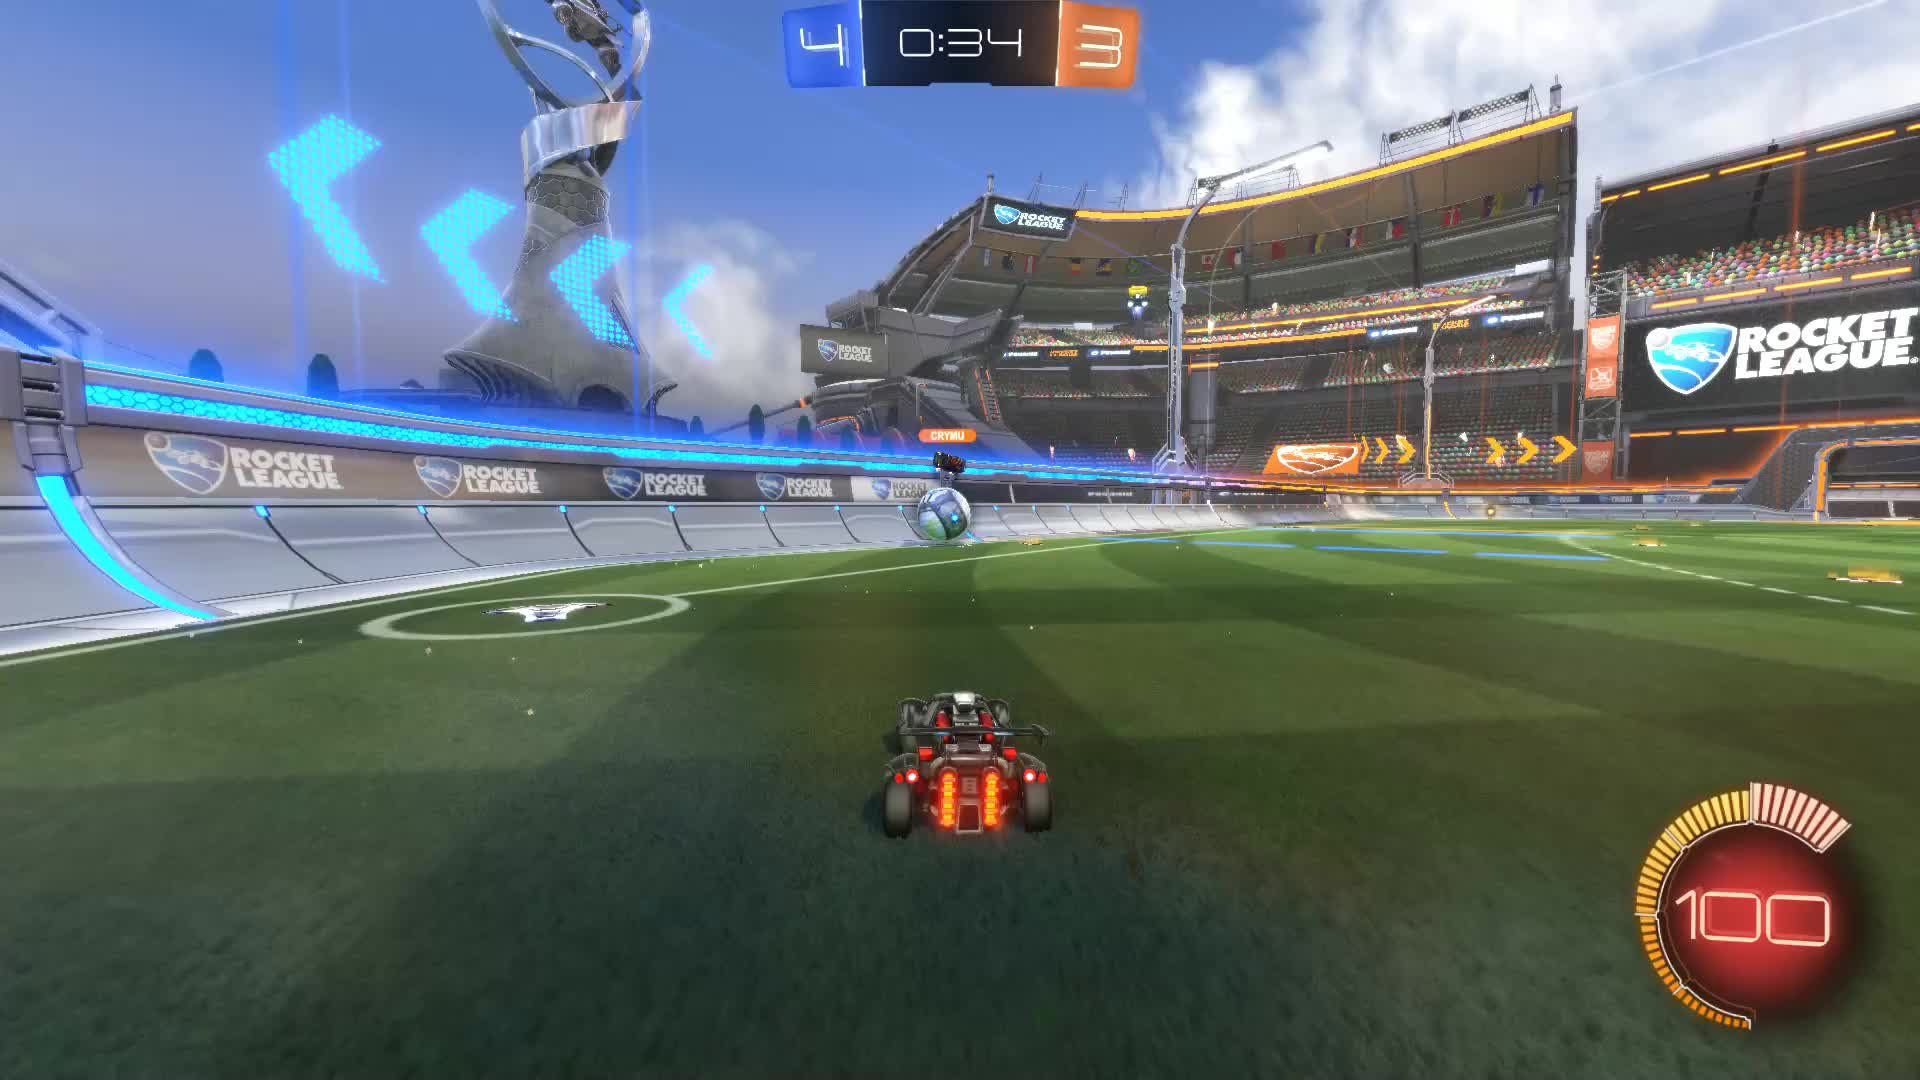 Gif Your Game, GifYourGame, Rocket League, RocketLeague, Save, revise, ⏱️ Save 6: revise GIFs